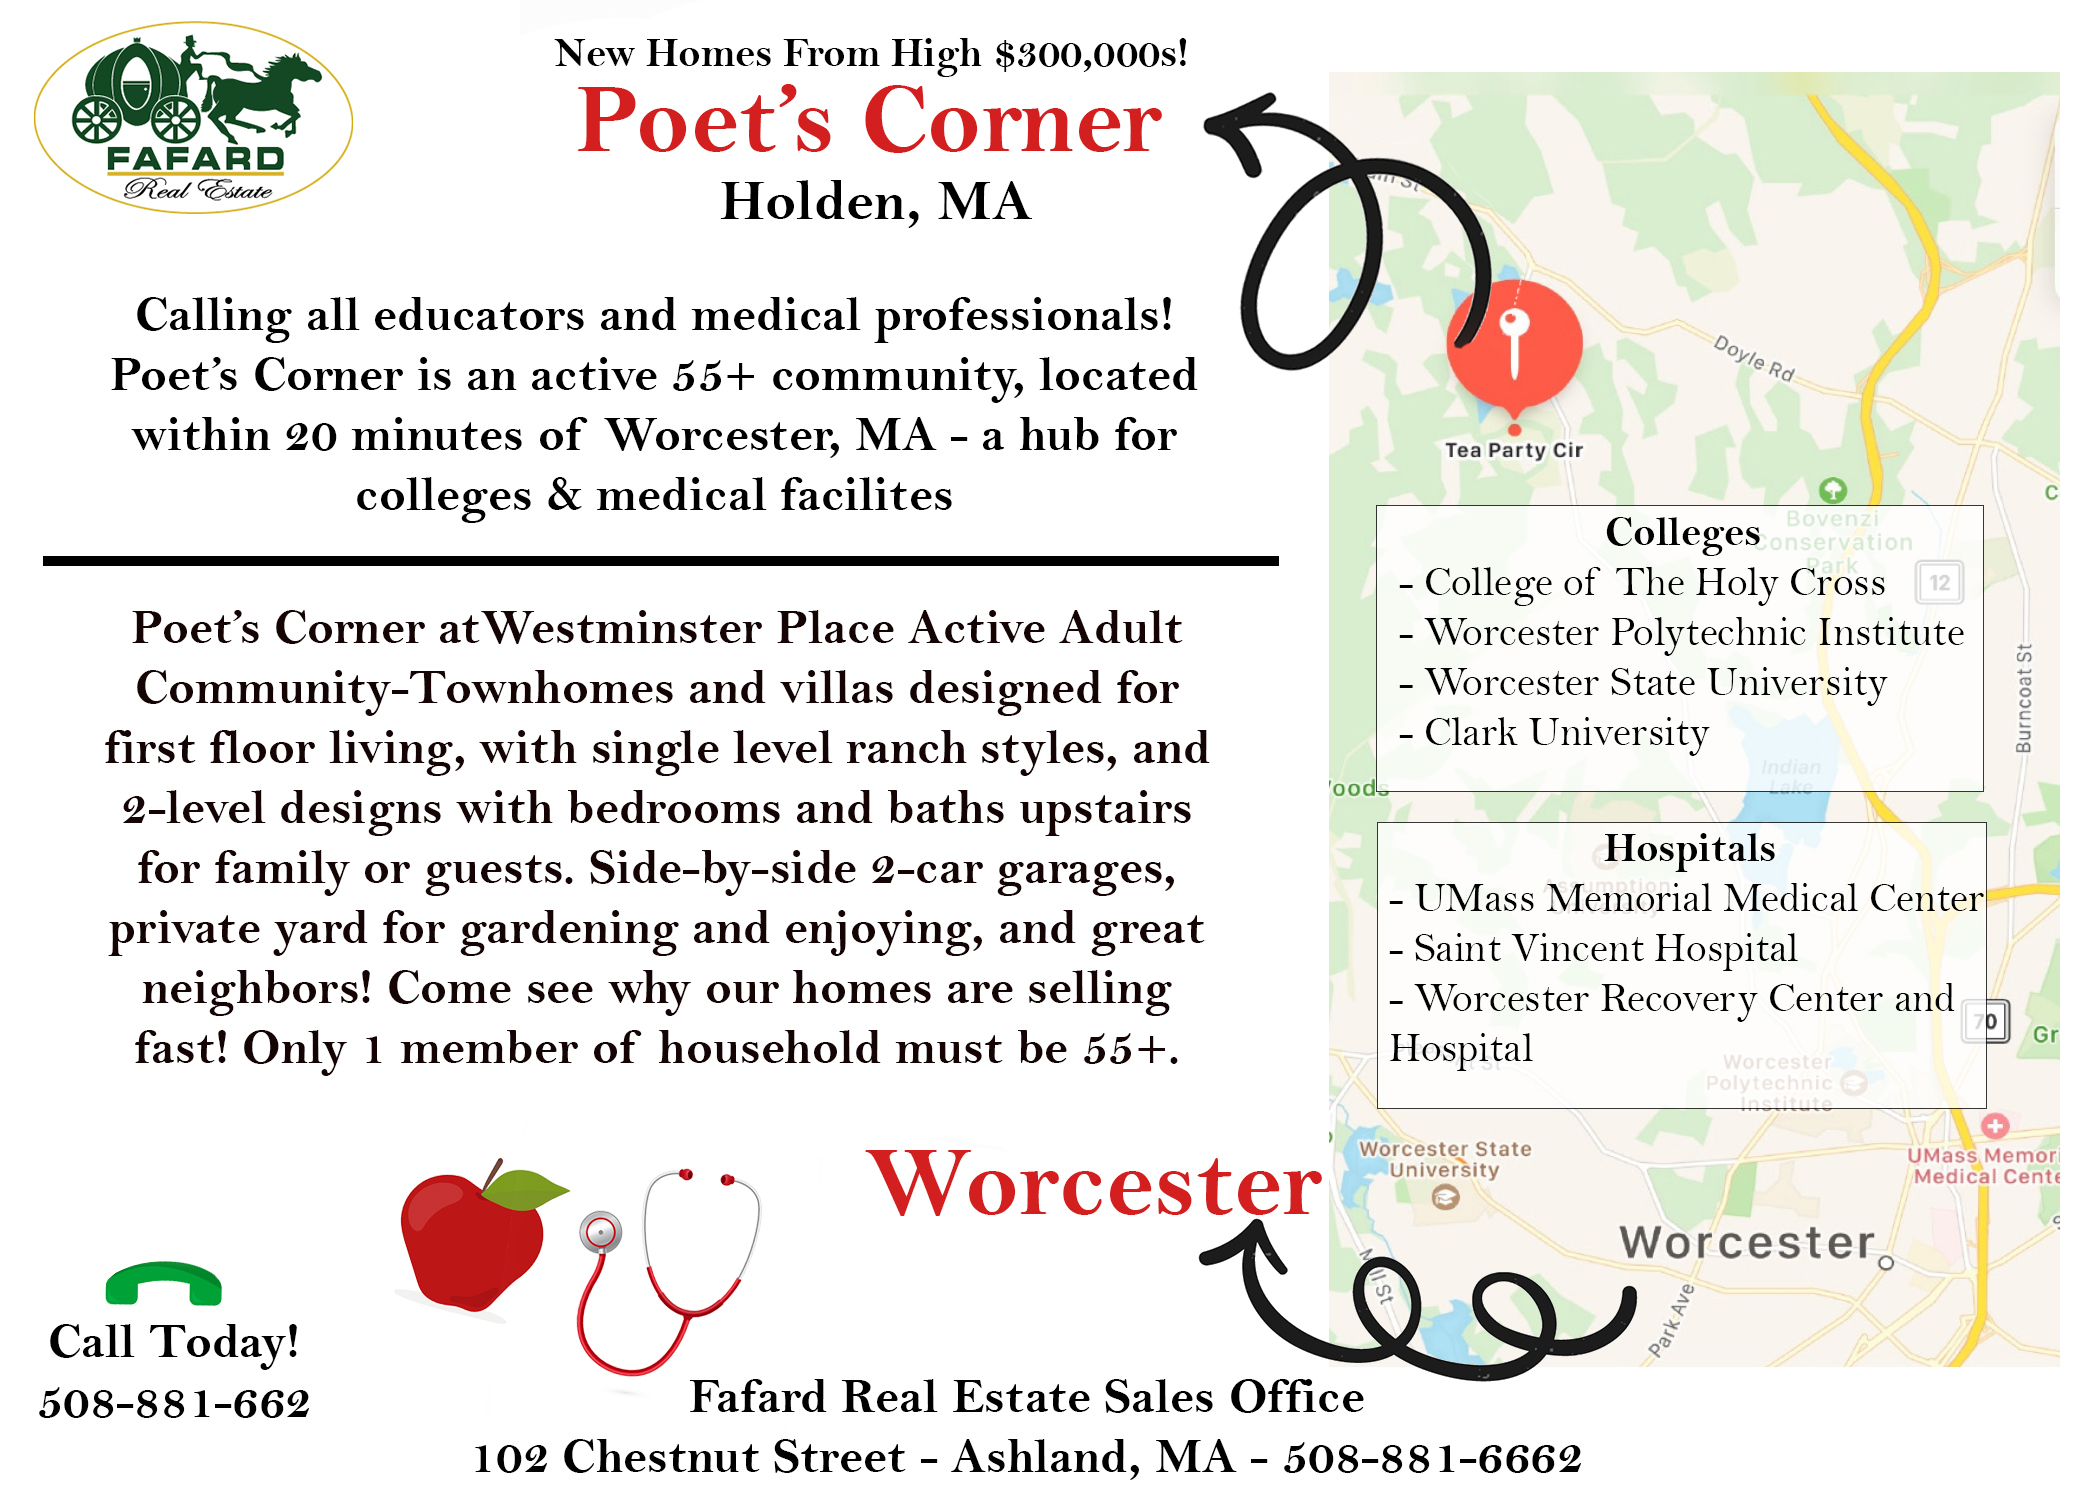 Holden, MA! A great home for Educators and Medical Professionals